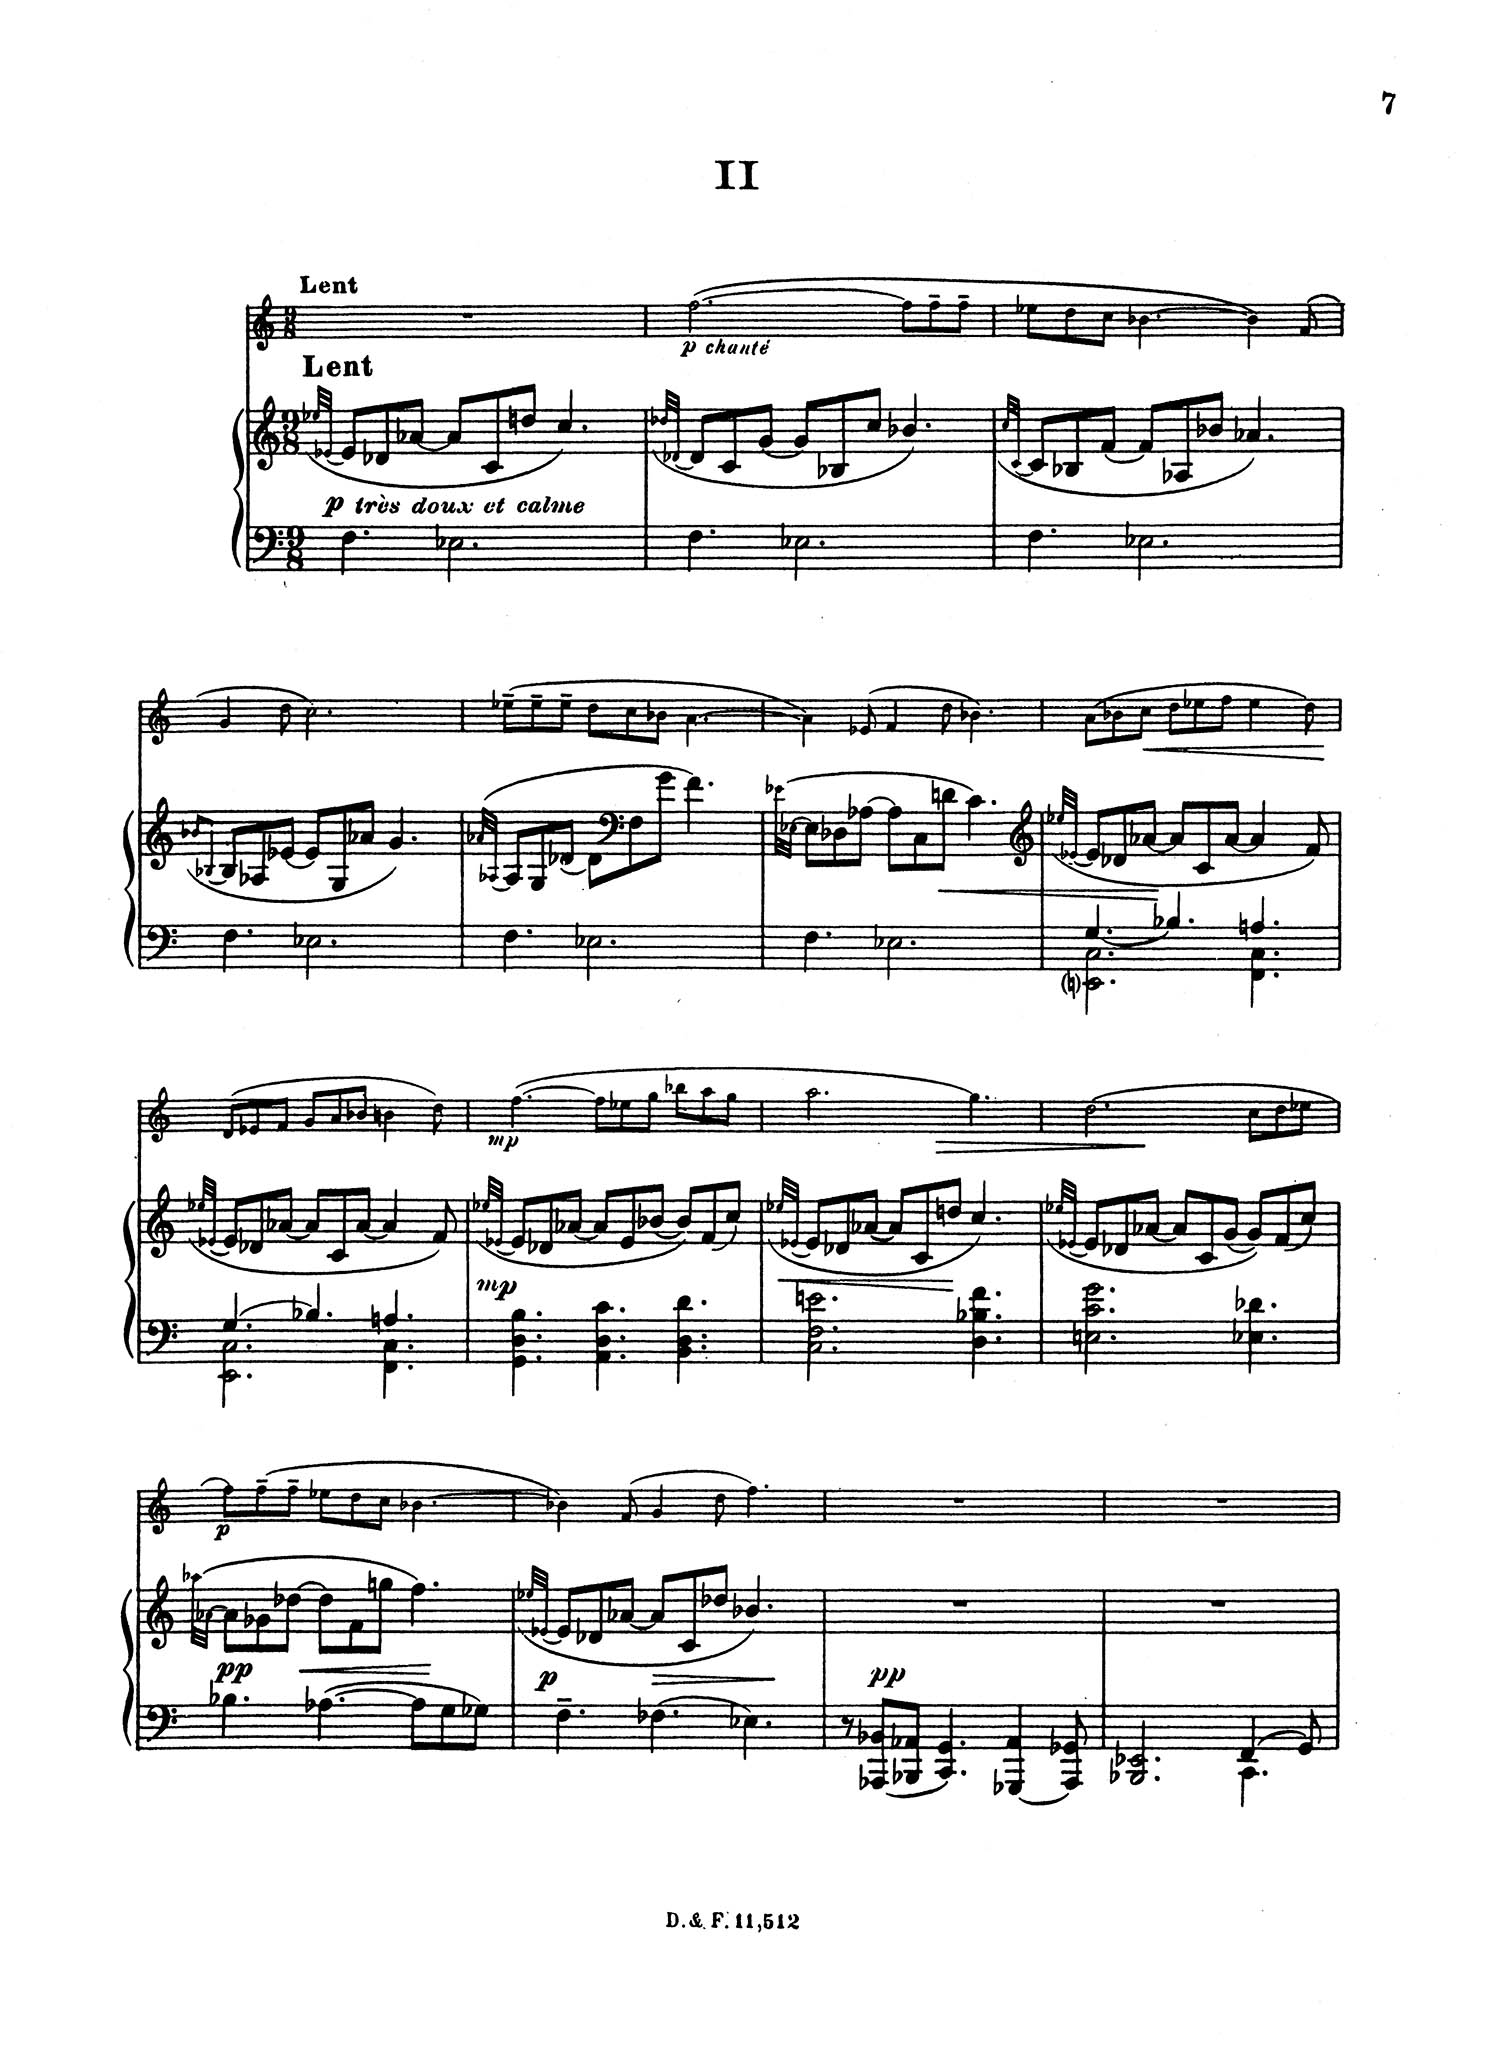 Sonatina, Op. 100 - Movement 2